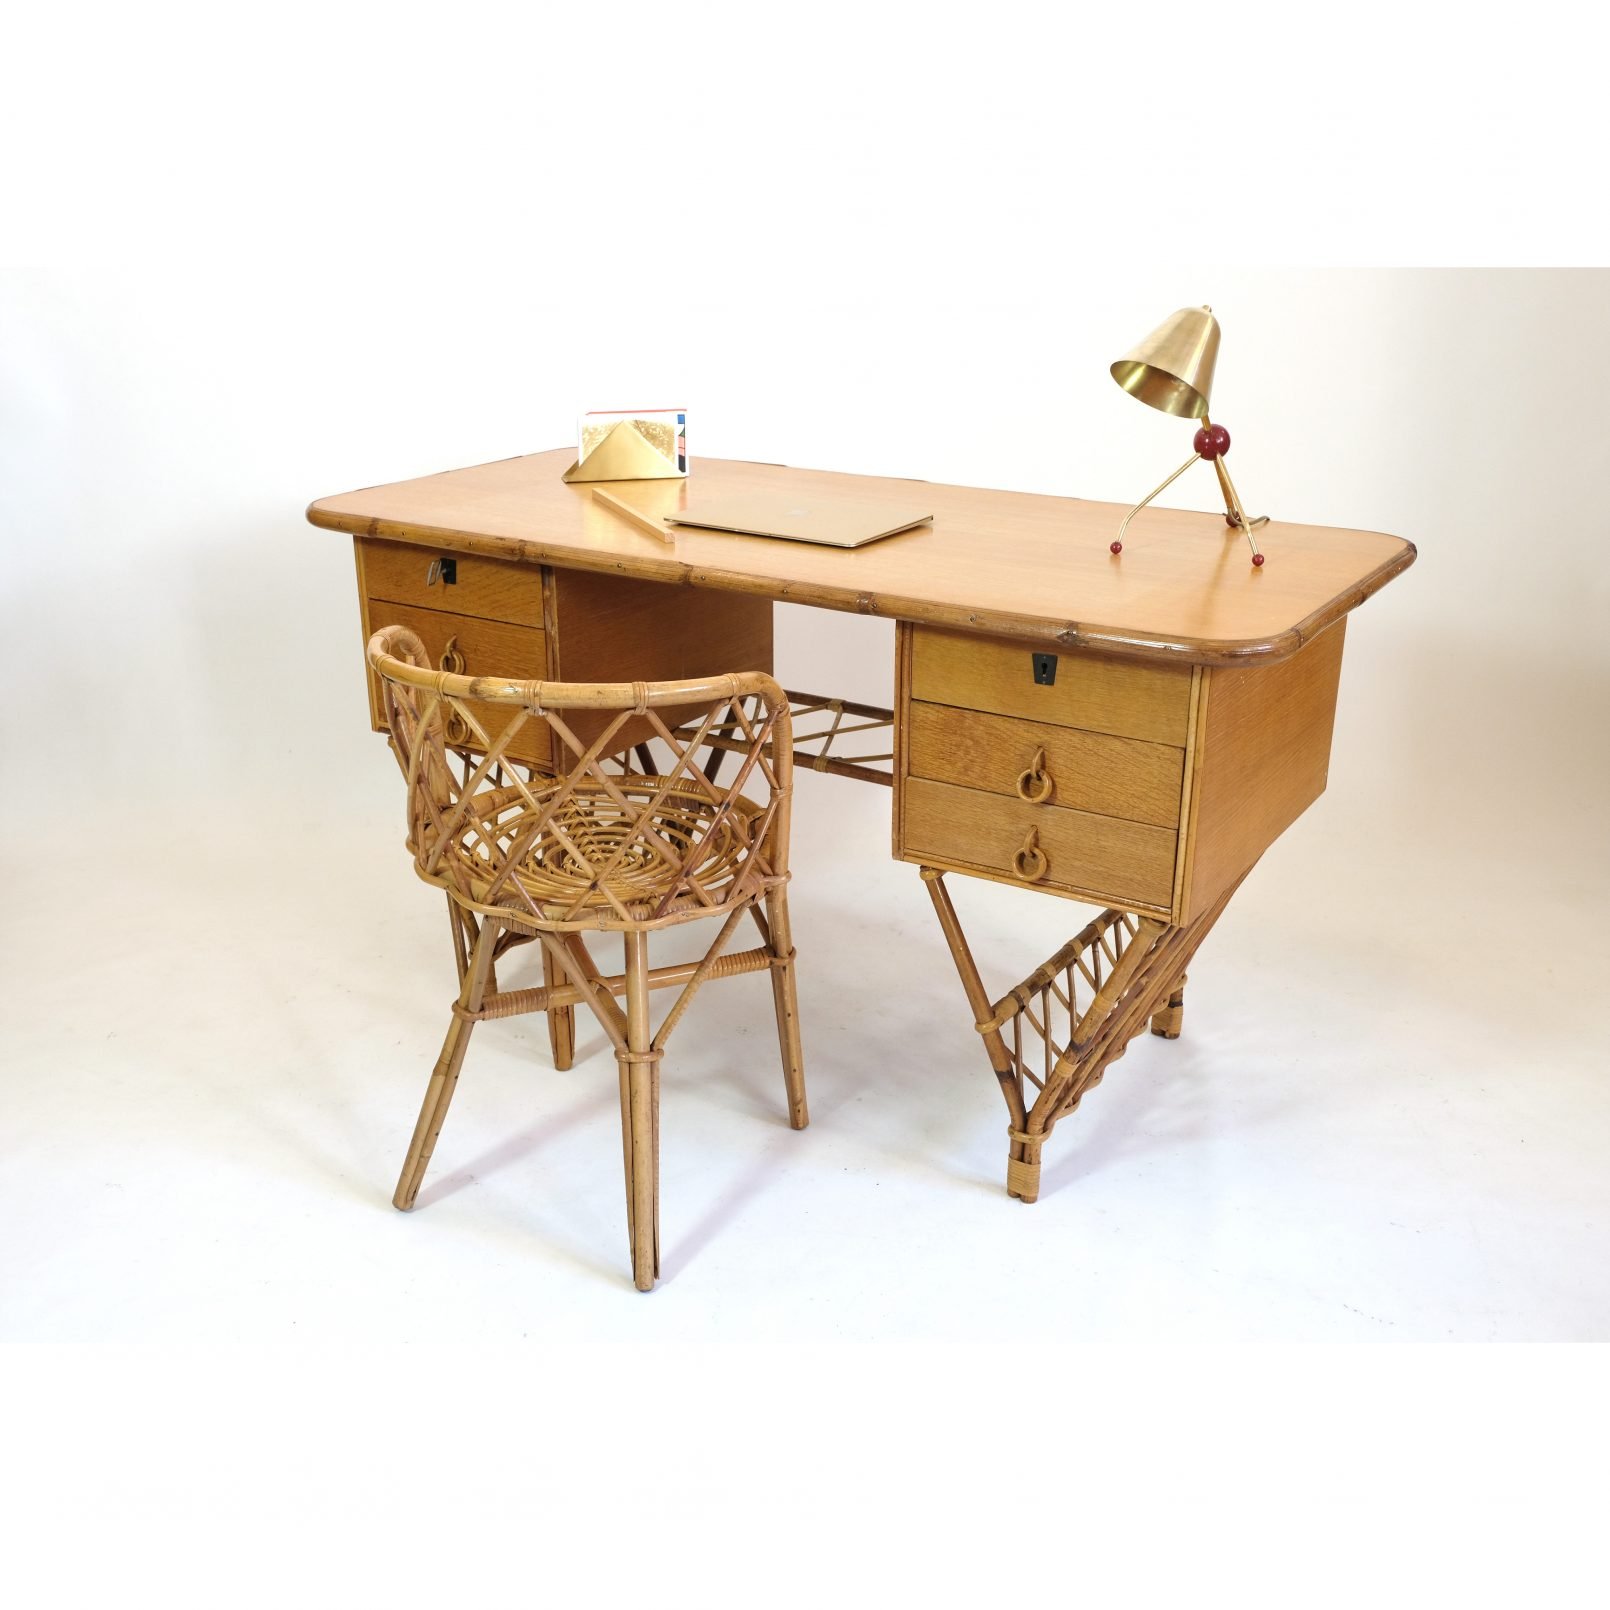 Bamboo and rattan desk and chair from the seventies.